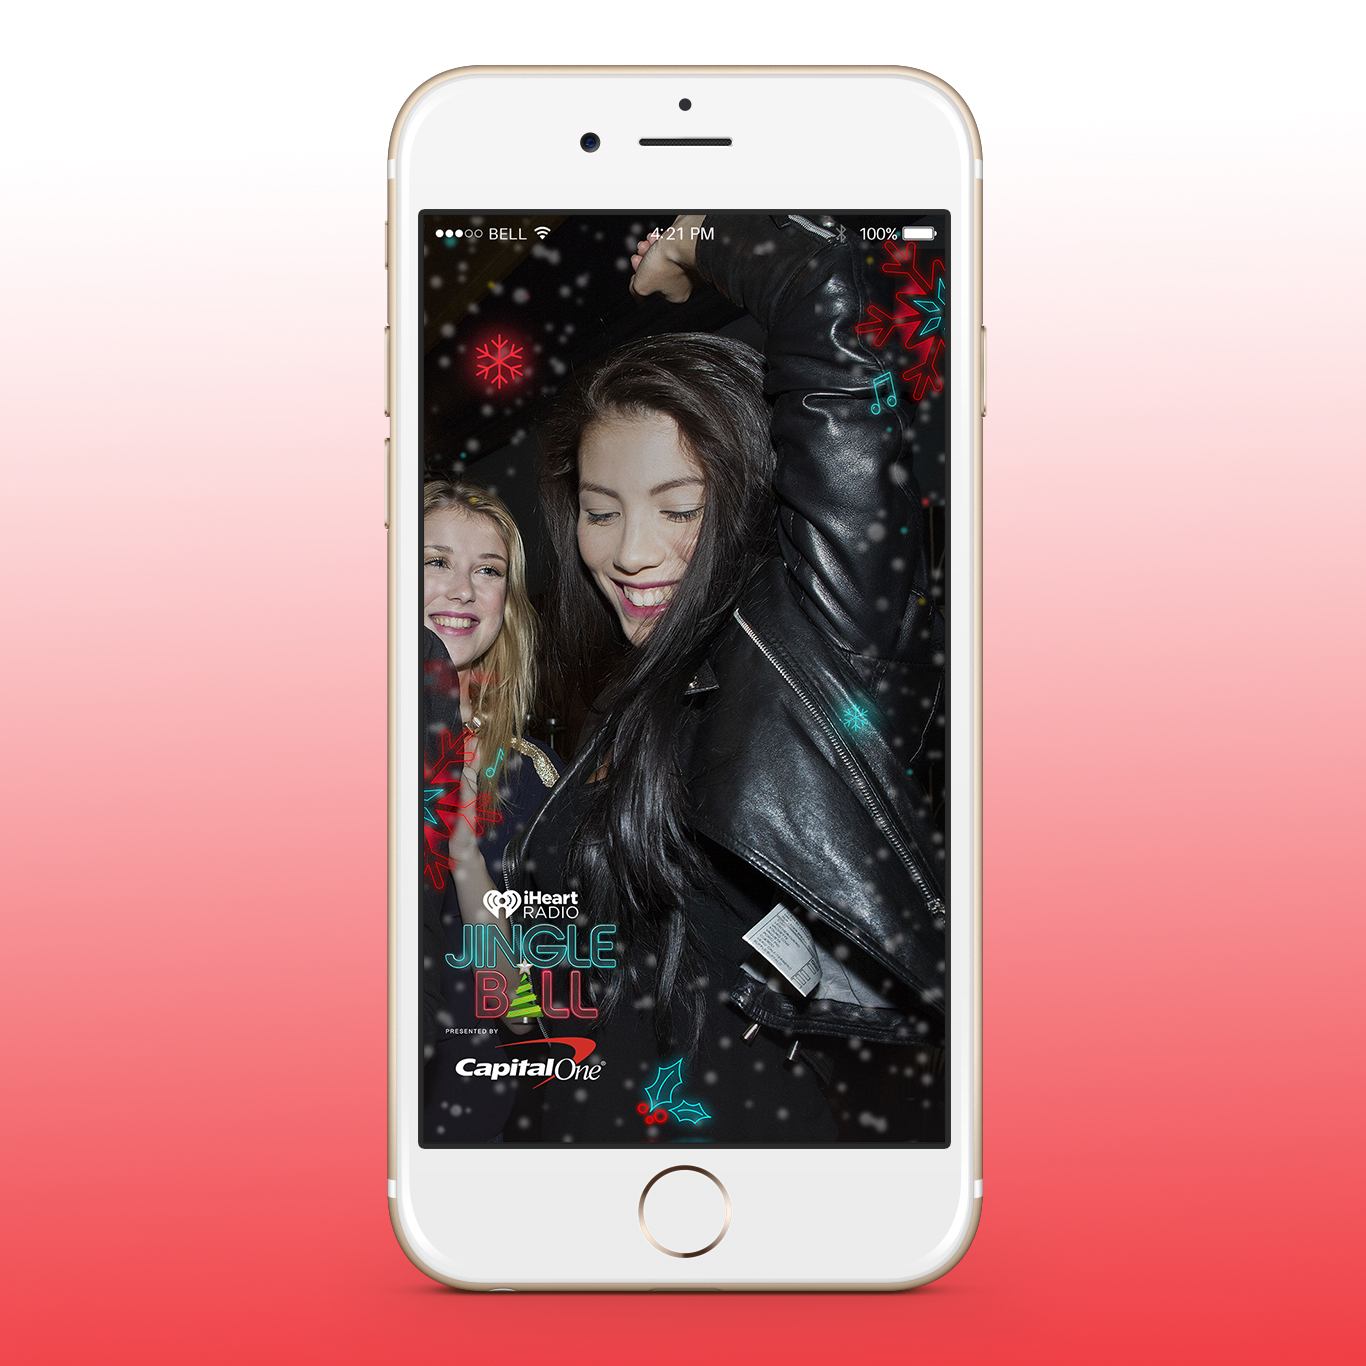 iHeart Jingle Ball Snapchat Filters - Concept 4